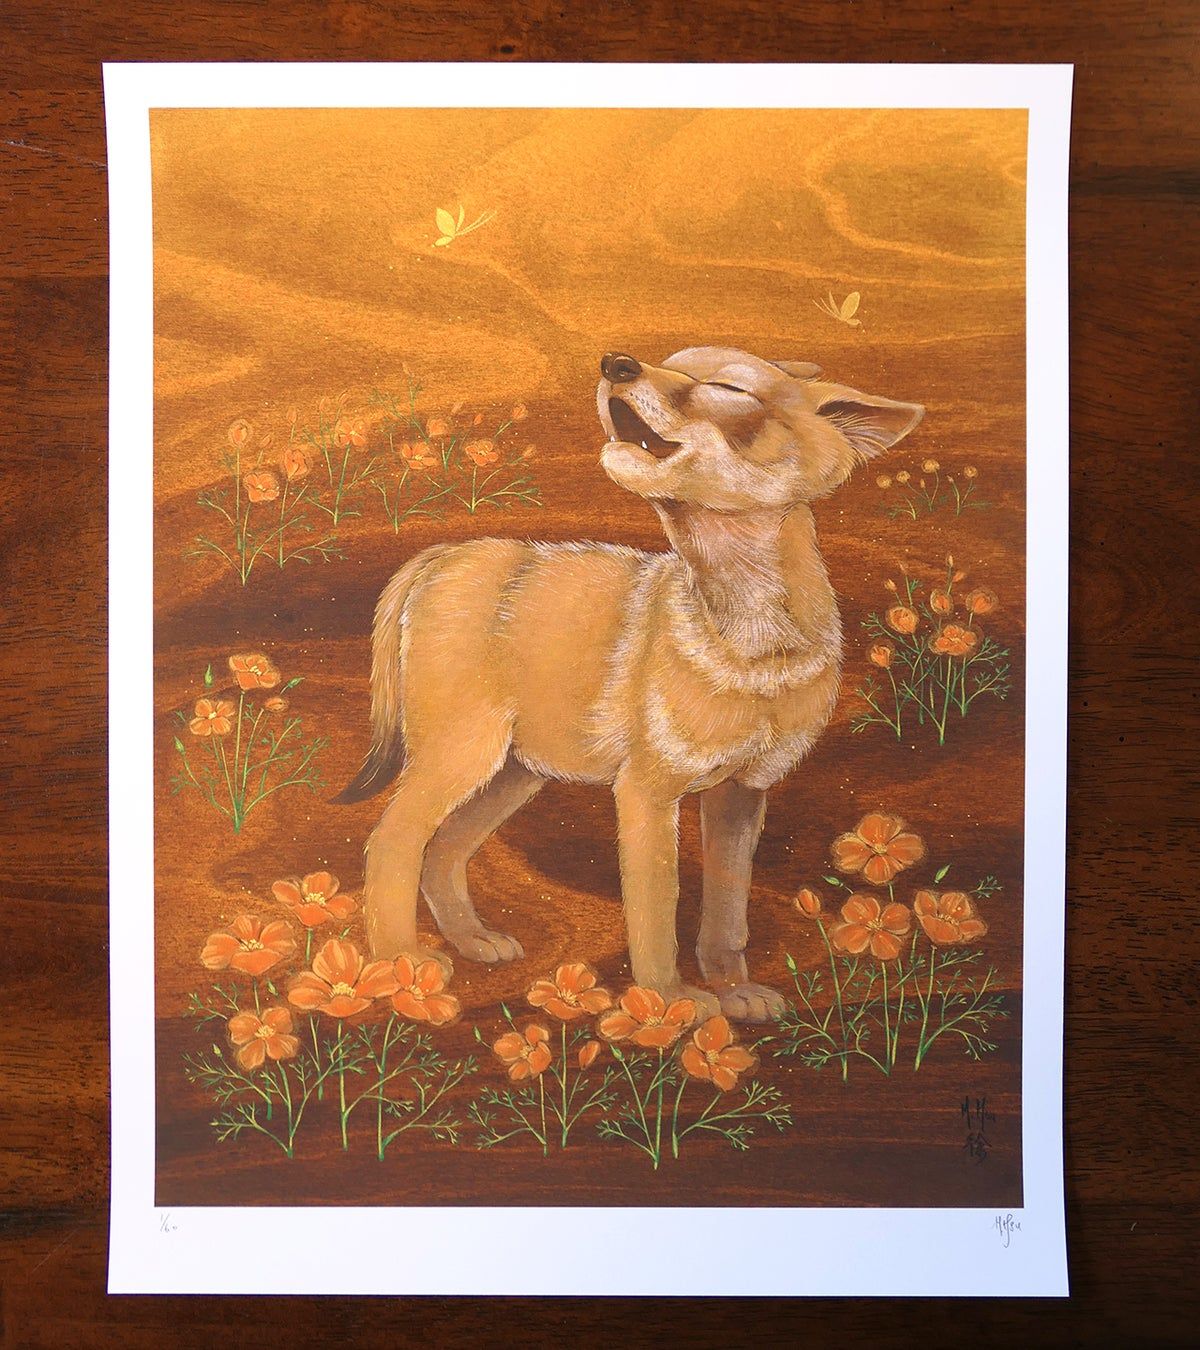 LTD Print - Coyote and Poppies